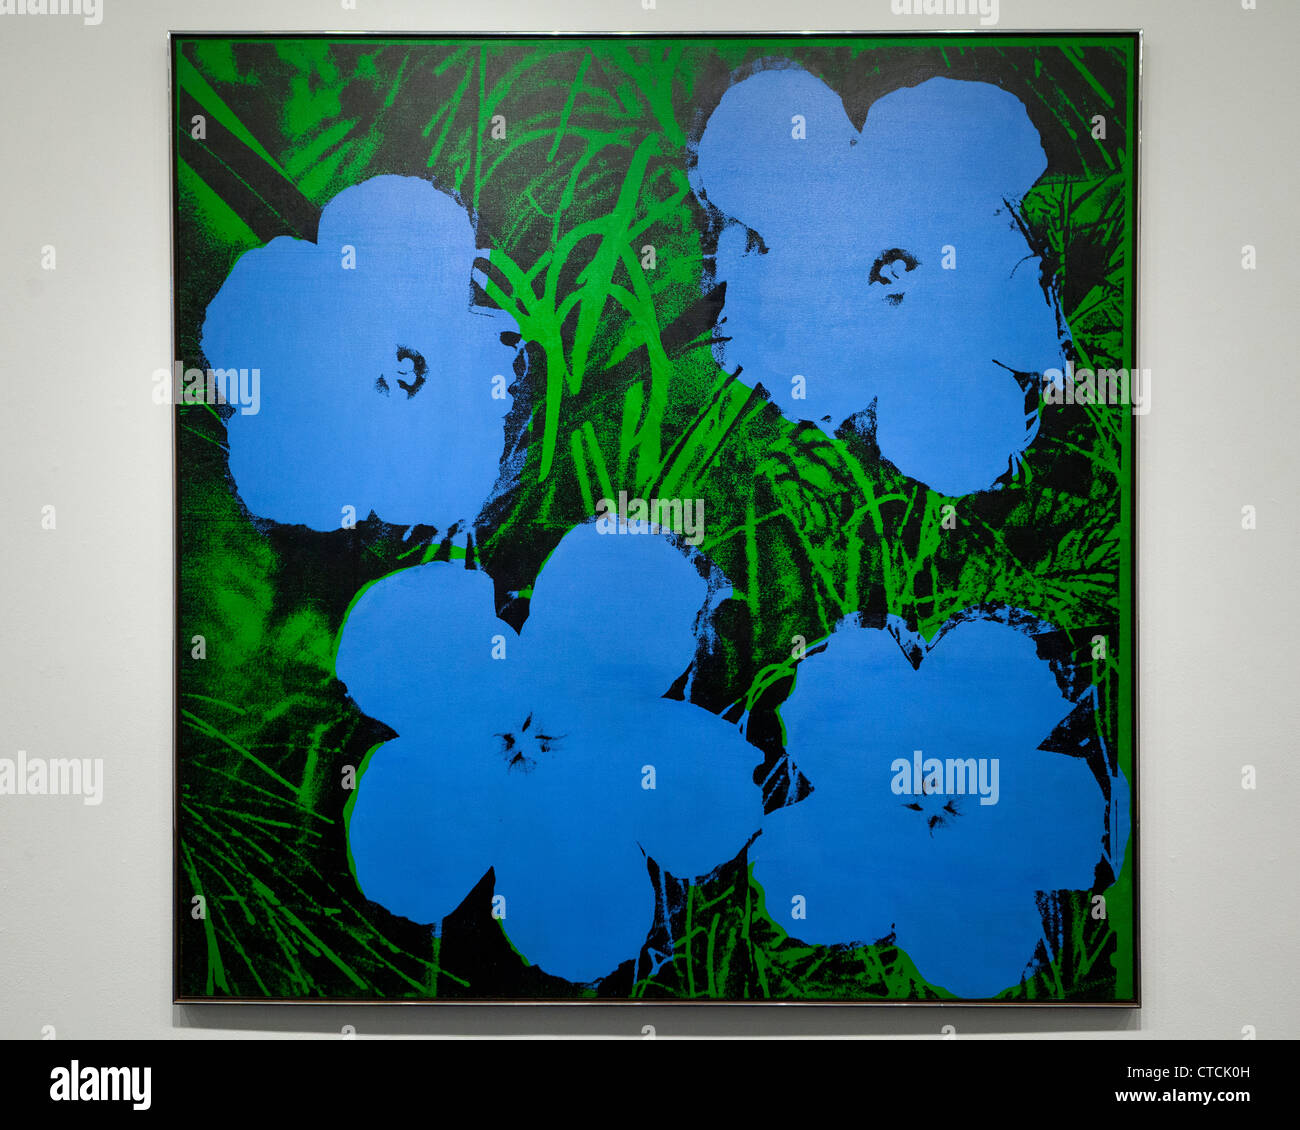 Fiori Warhol.Flowers Andy Warhol 1964 Oil And Photoserigraph On Linen Usa